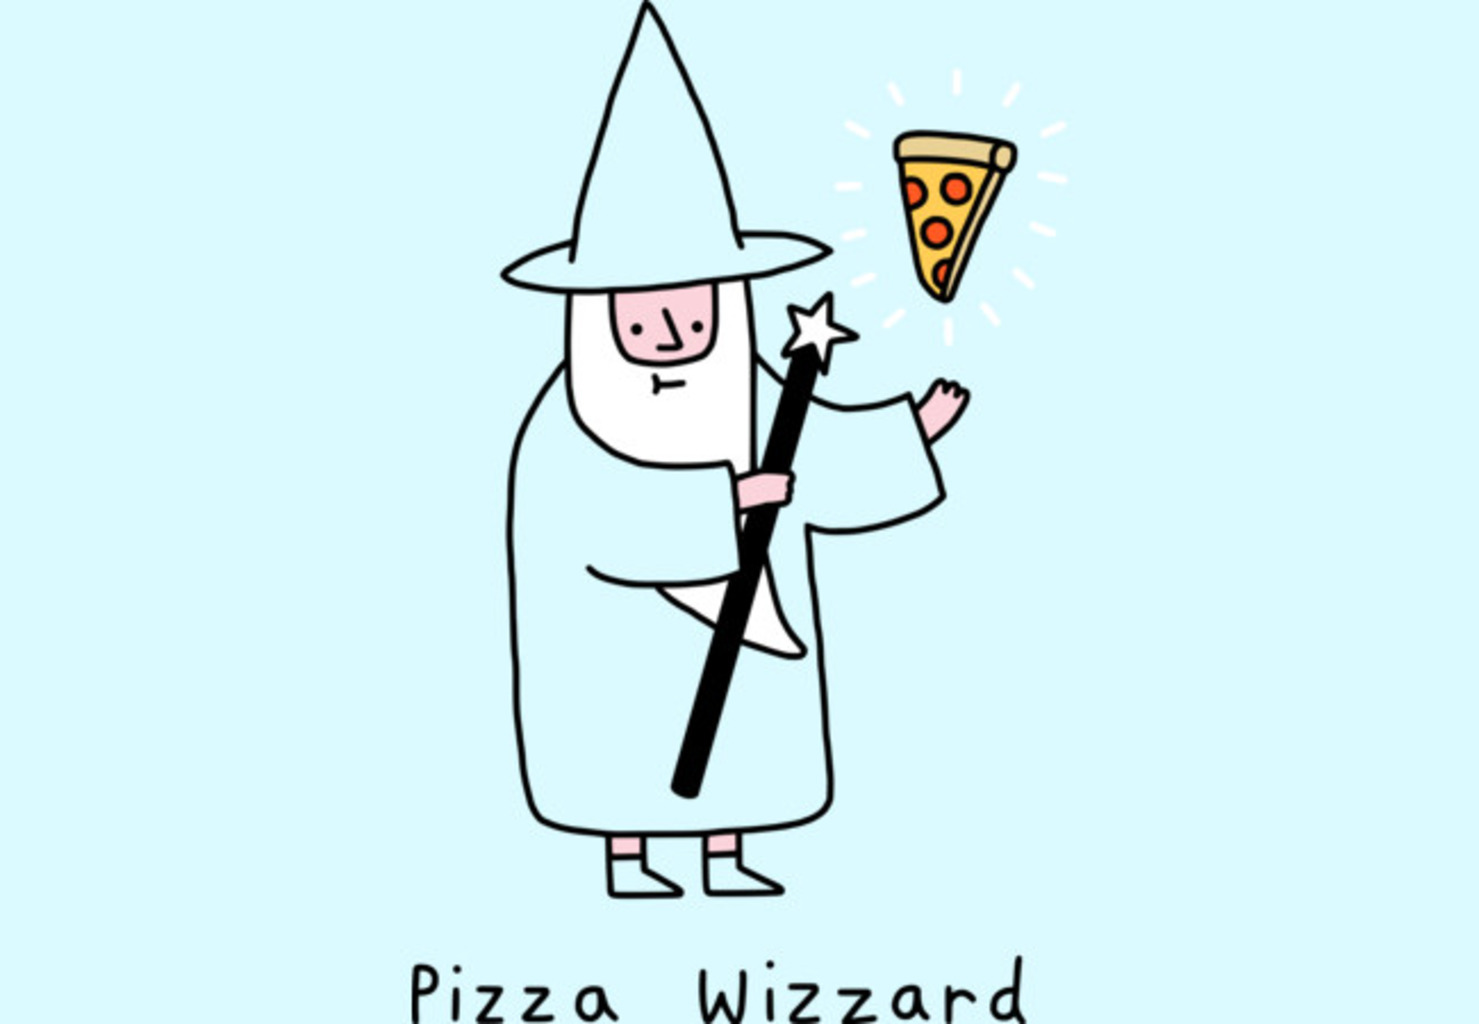 Design by Humans: Pizza Wizzard